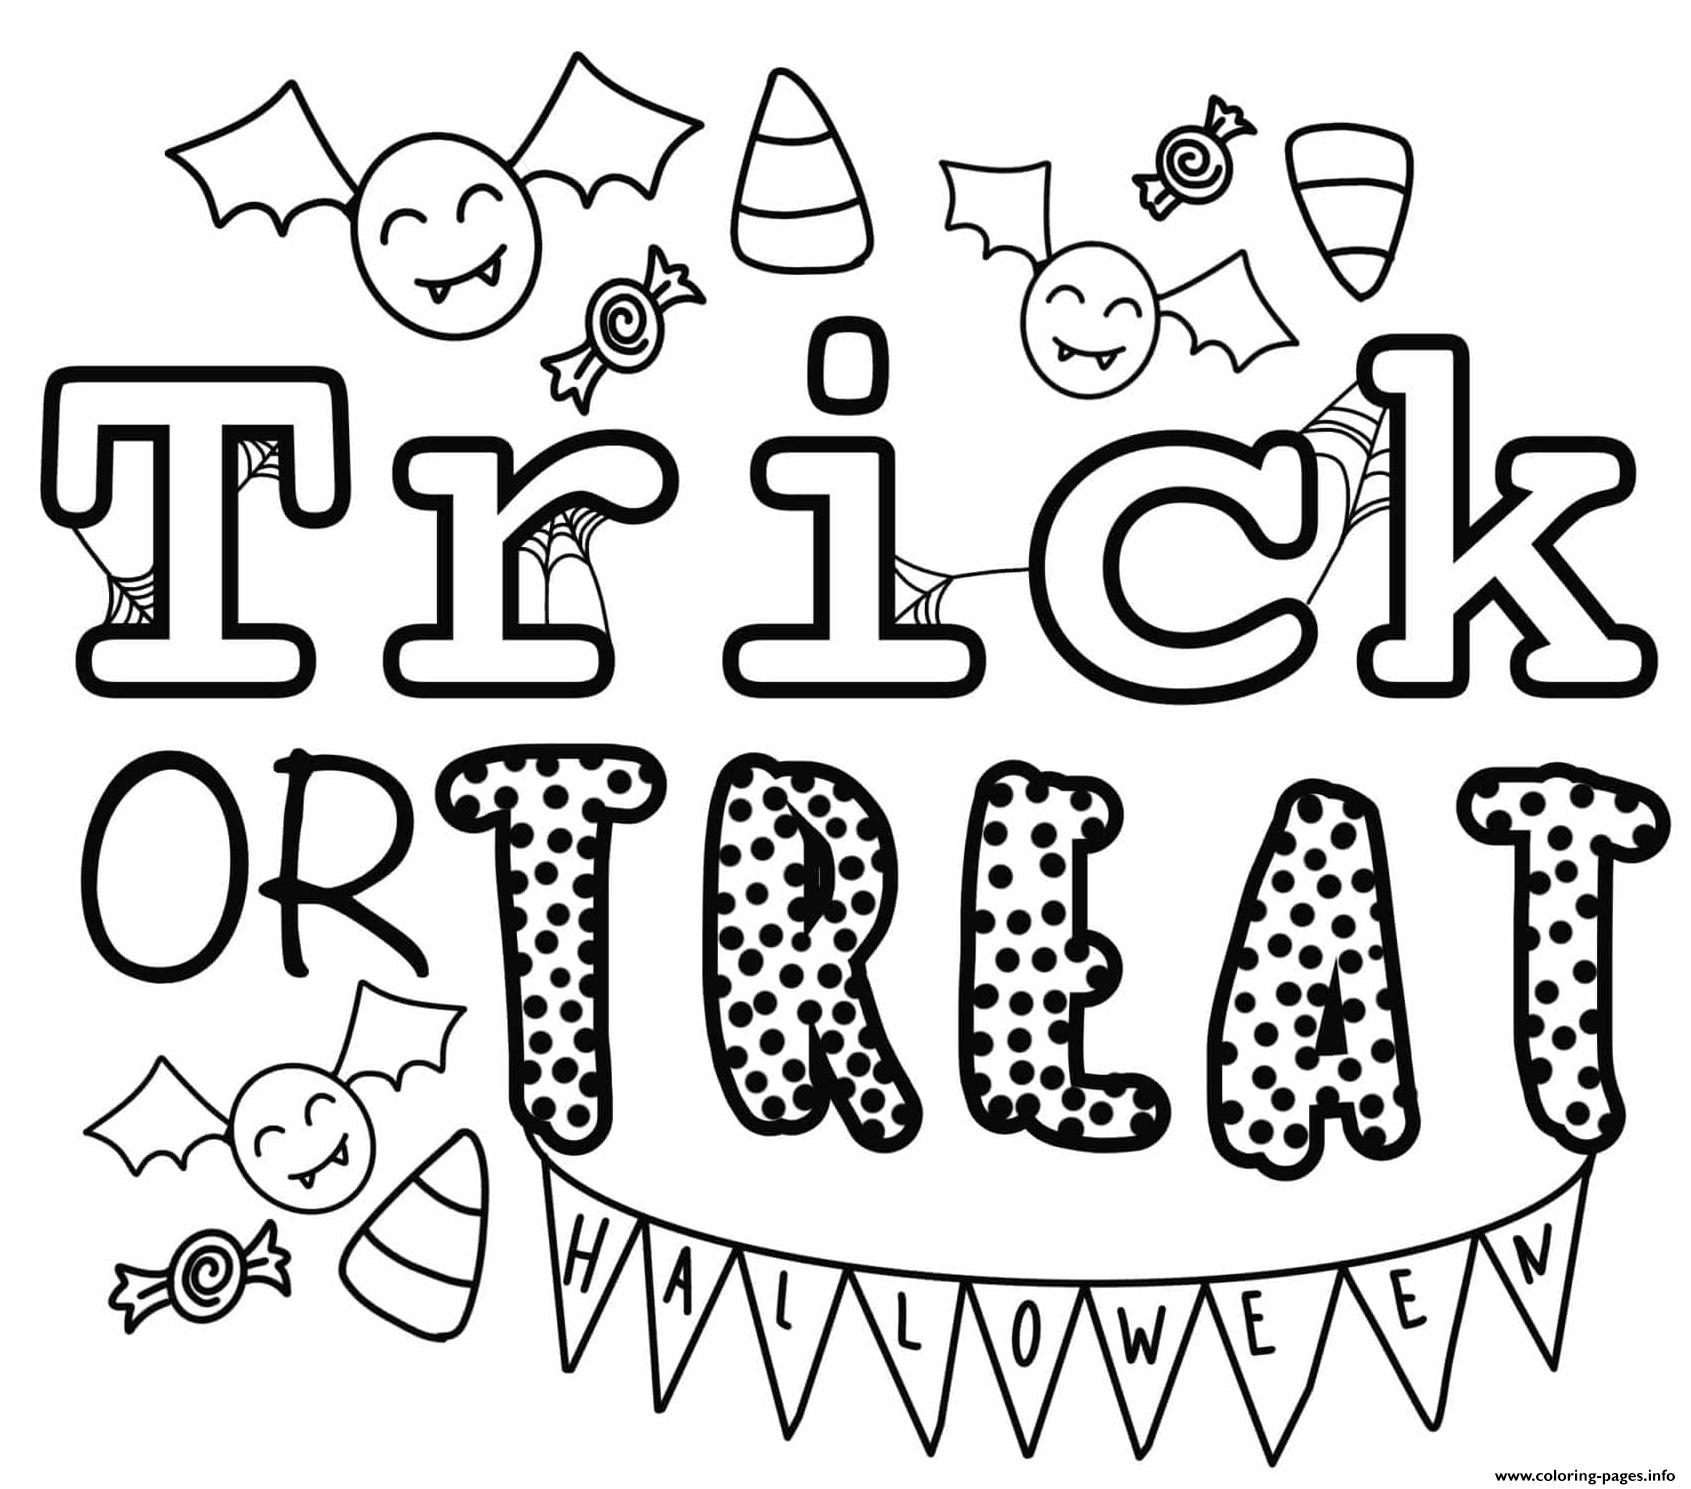 Trick Or Treat Halloween By Heather Hinson Coloring Pages destiné Trick Or Treat Coloring Book: Trick Or